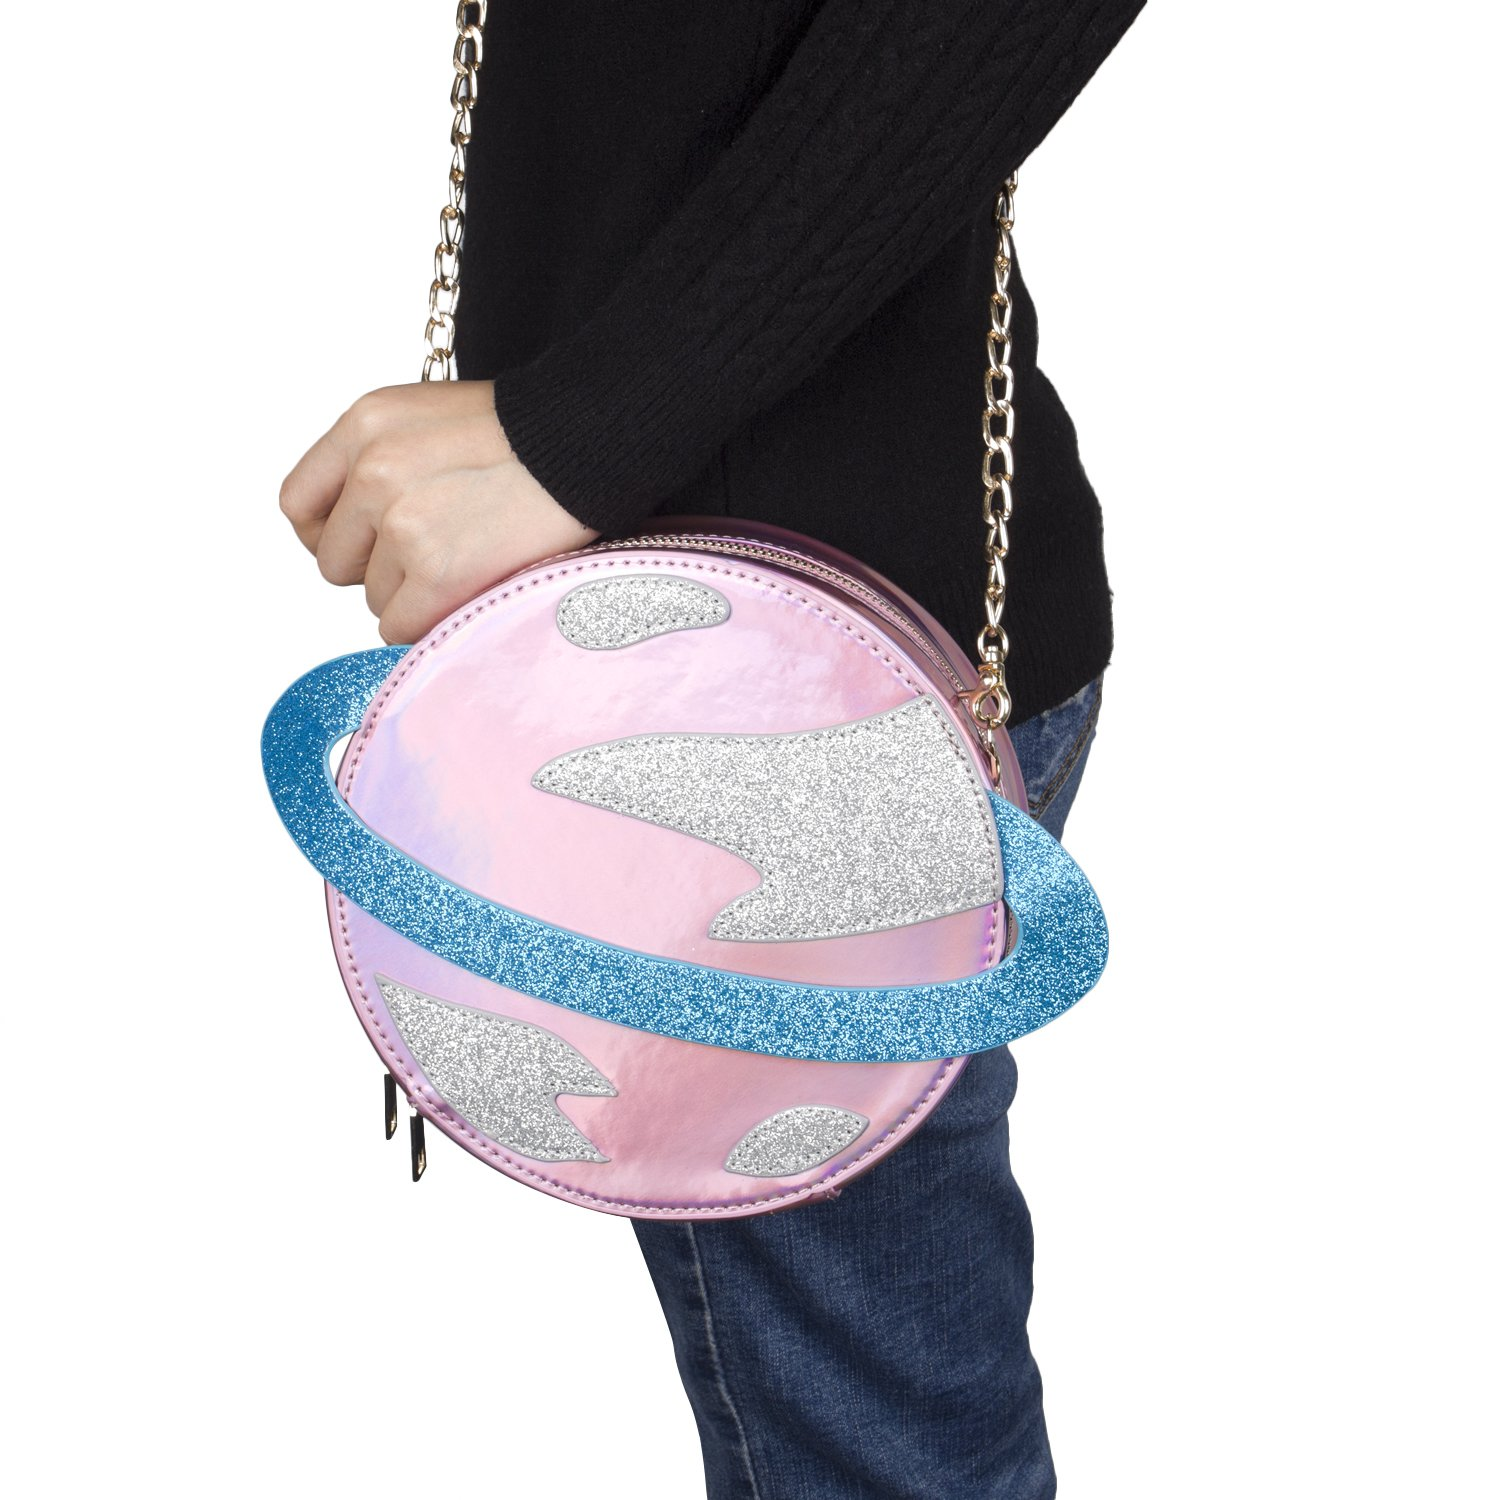 Buy Planet Orbit Bag Now!